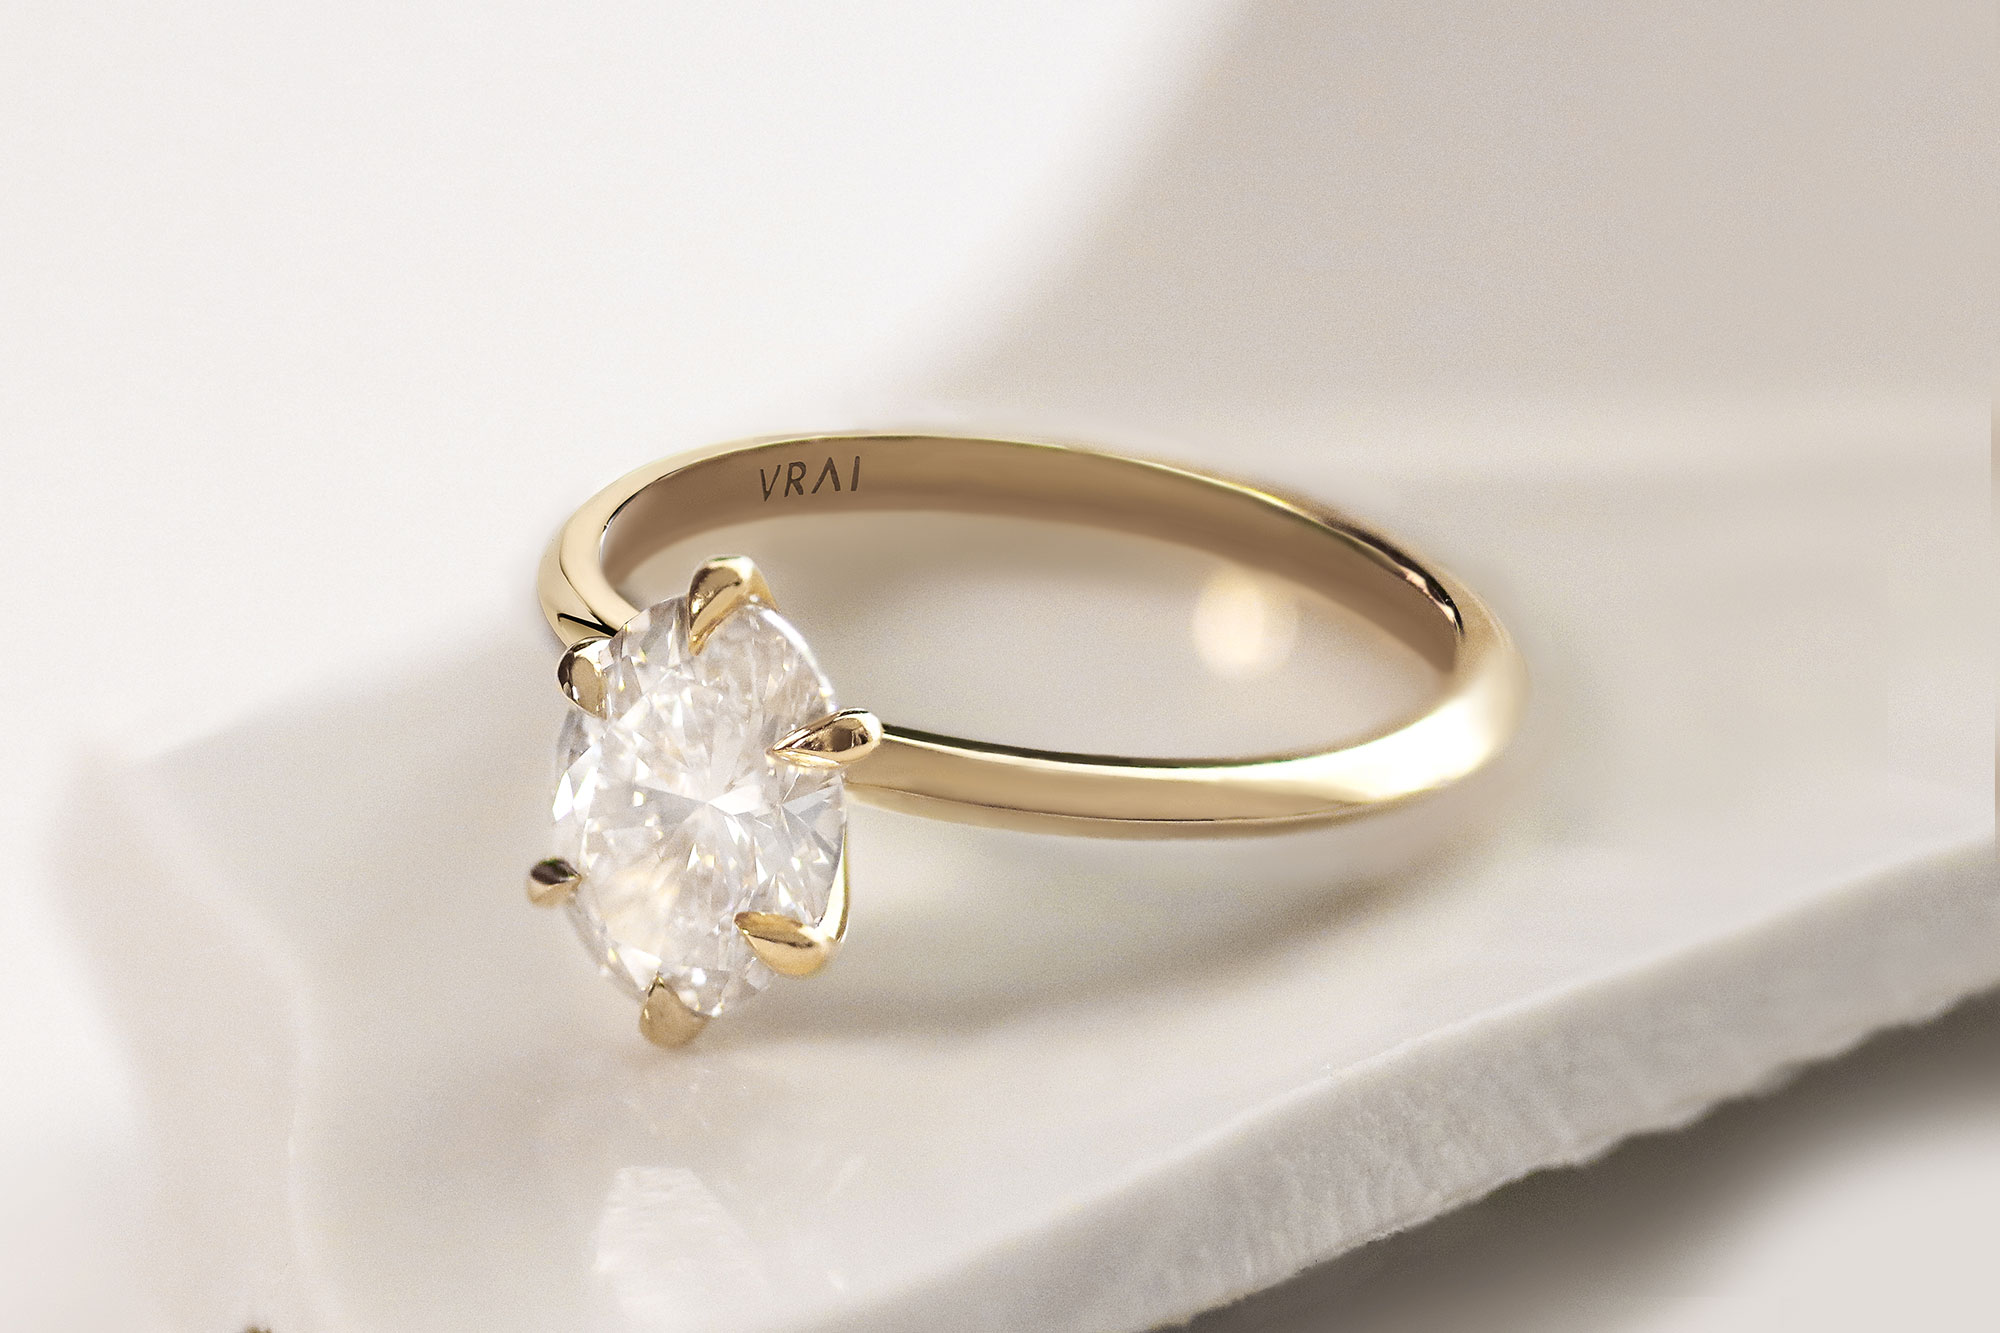 The oval knife edge engagement ring with yellow gold band